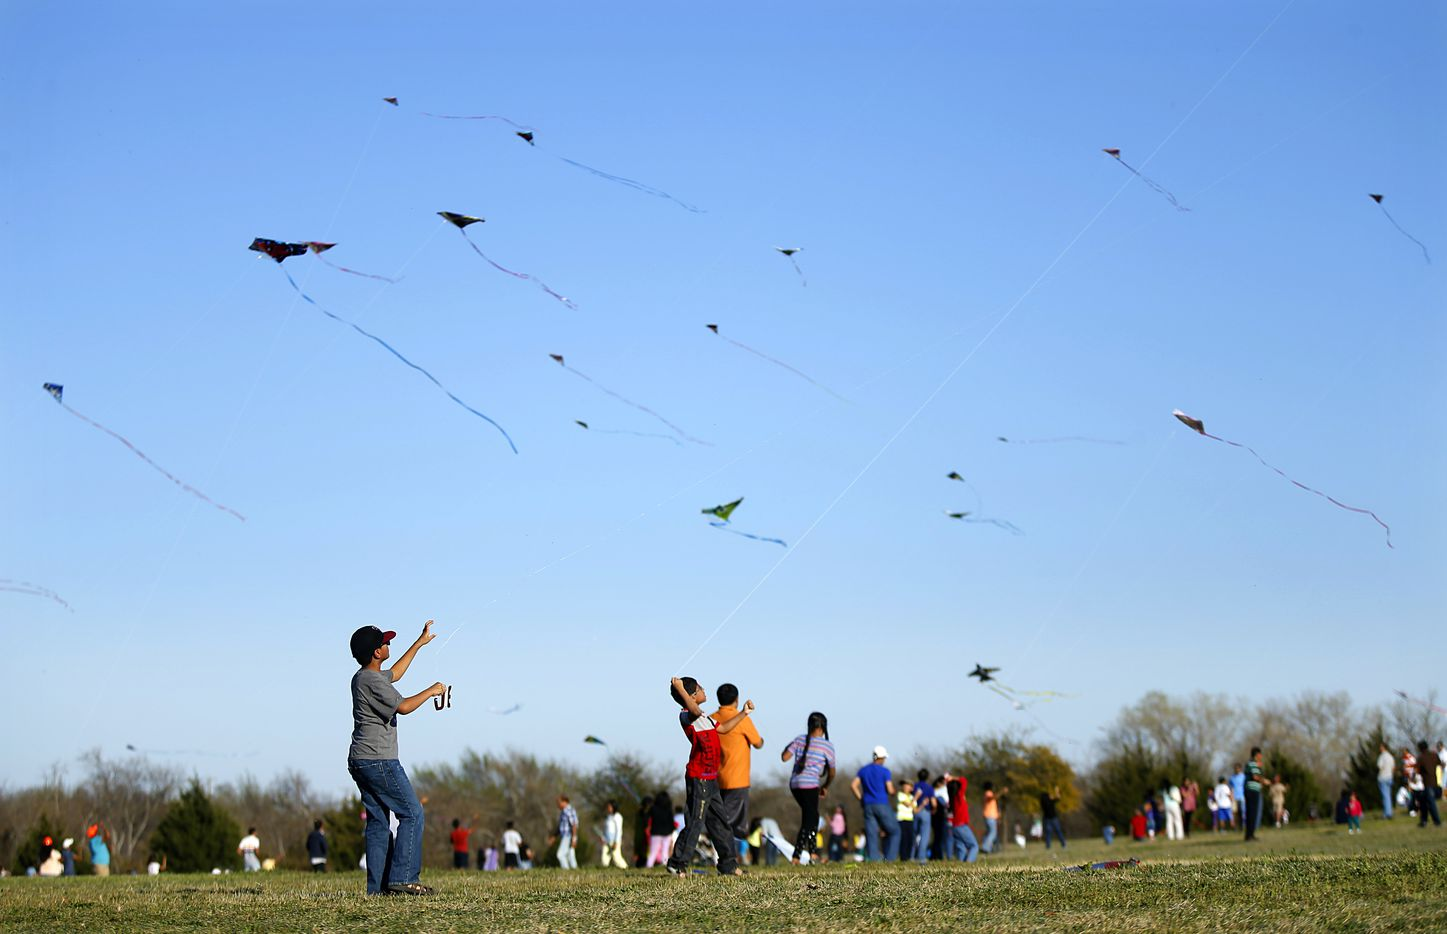 Kites take flight at the 11th annual Kite Flying Festival sponsored by Texas Instruments at Frisco Commons Park in Frisco in March 2014.